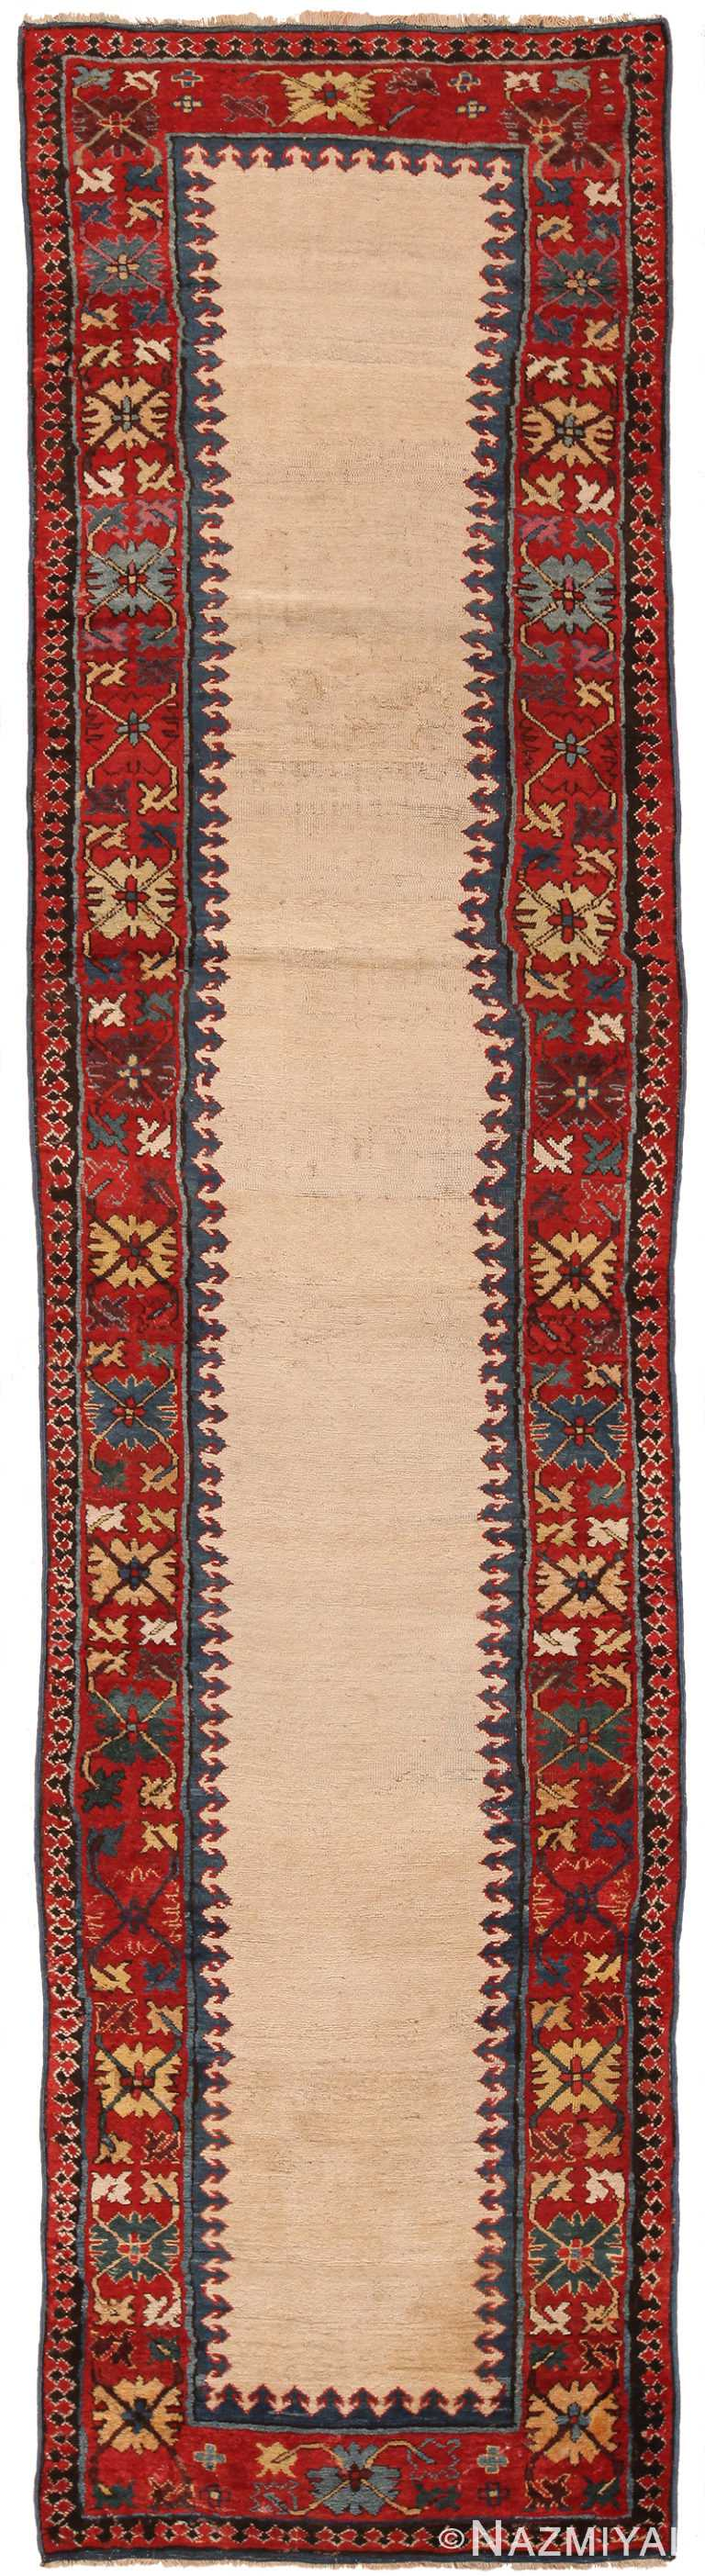 Antique Caucasian Moghan Runner Rug 70170 by Nazmiyal NYC